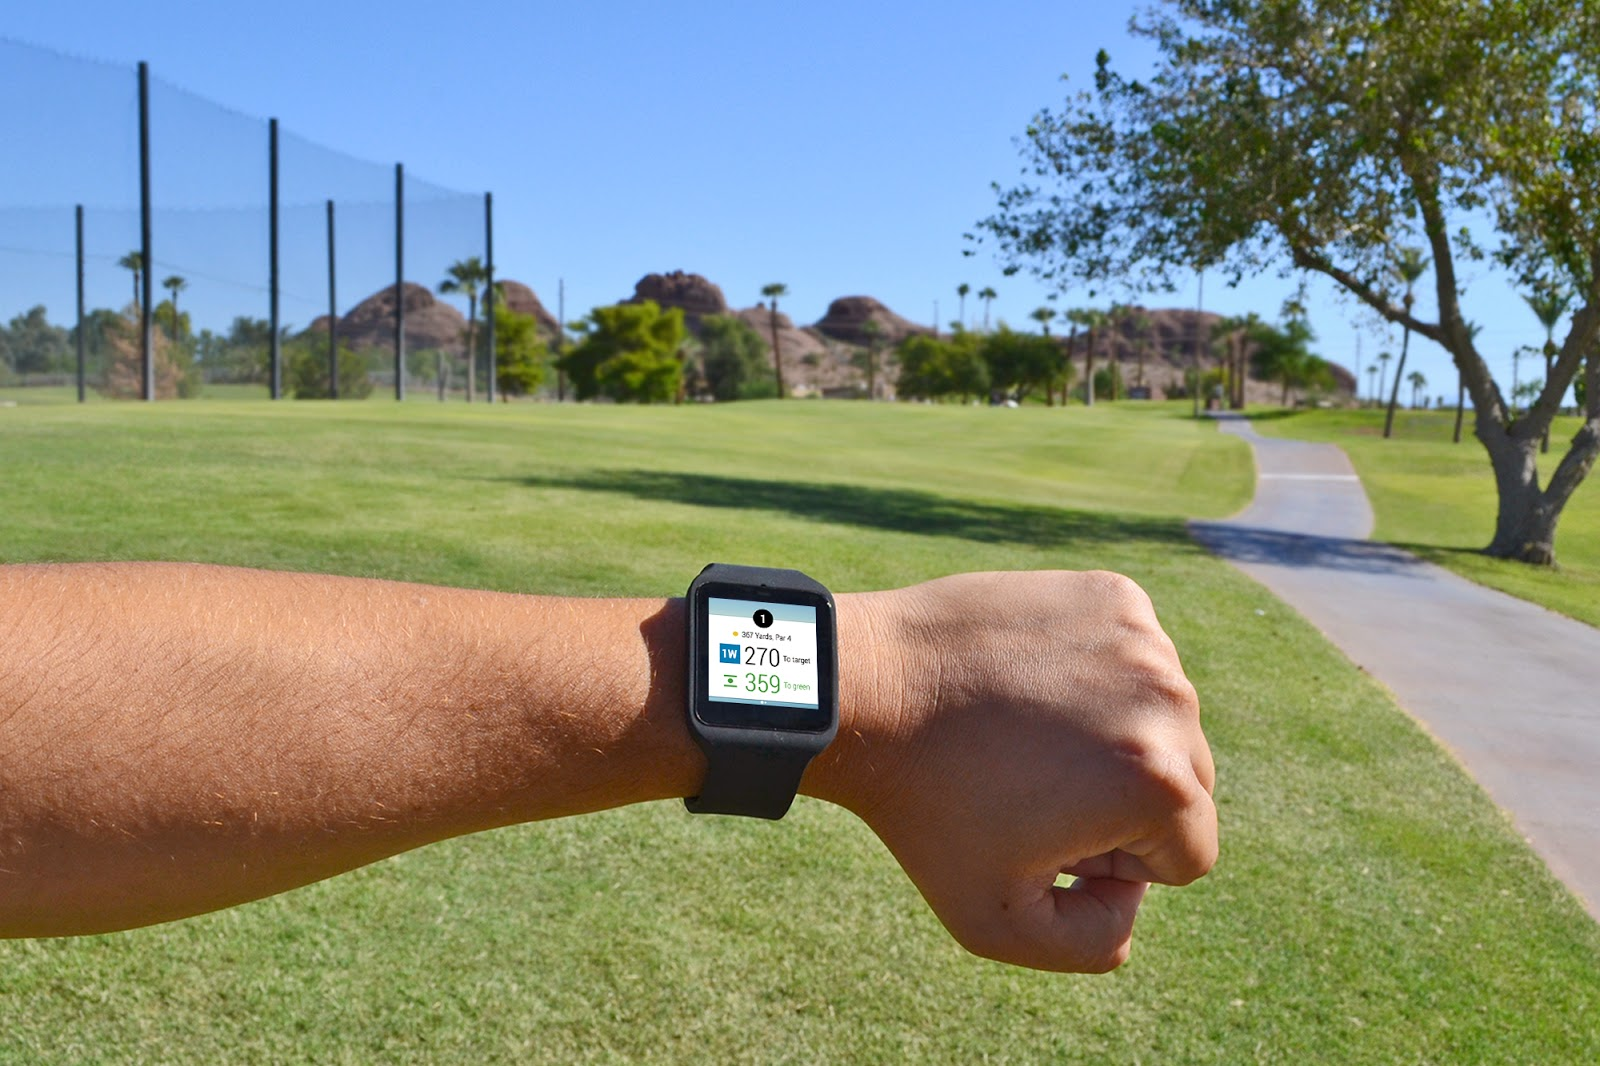 Android Developers Blog: GPS on Android Wear Devices